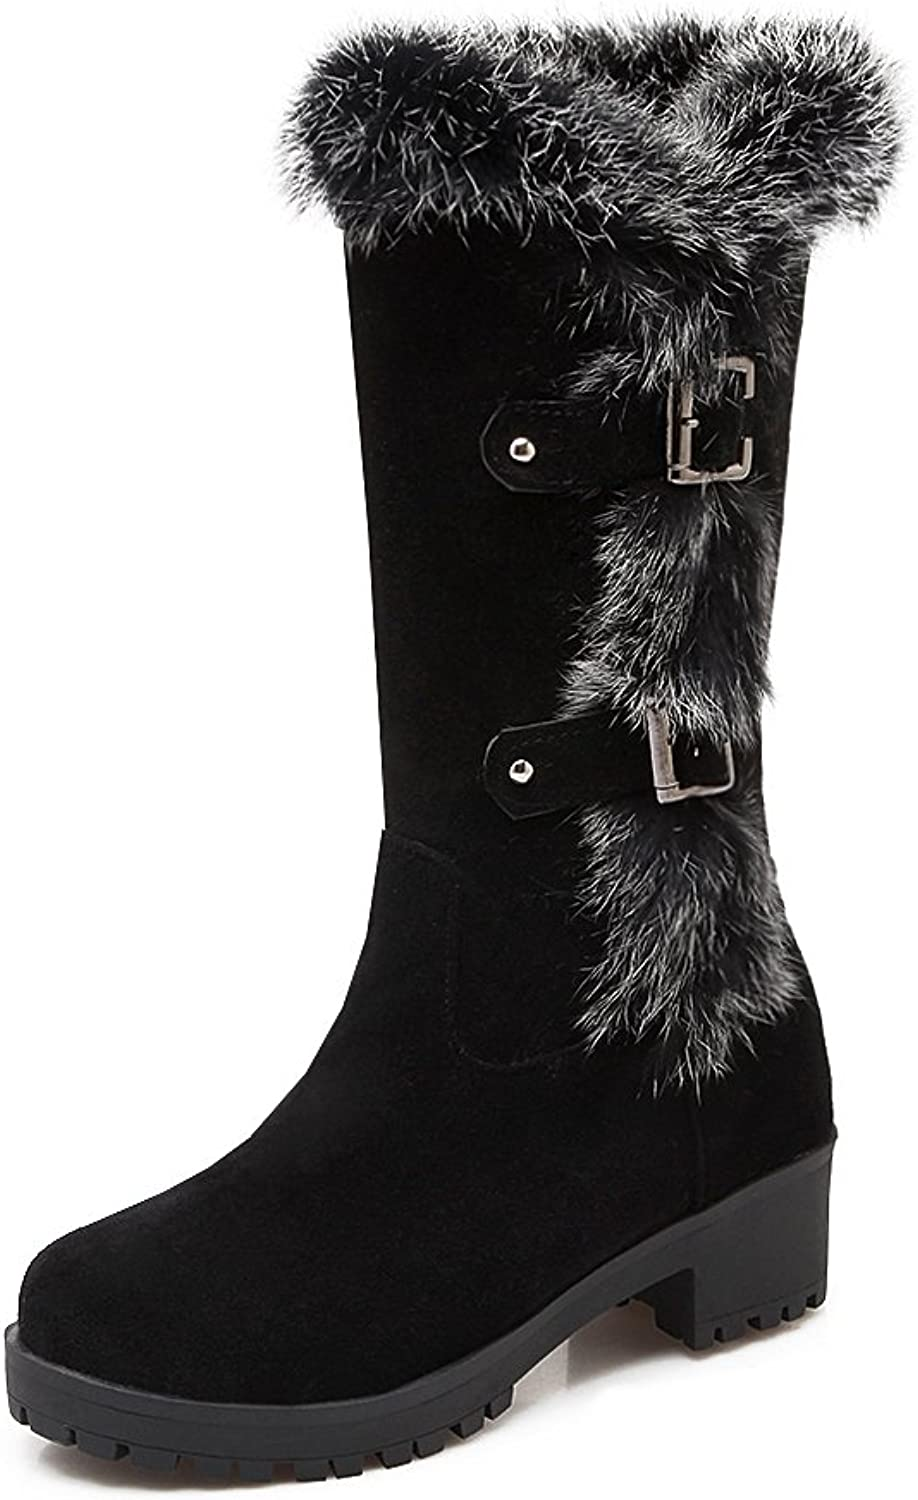 AIWEIYi Womens Thermal Knee High Slip-resistant Rabbit fur Winter Snow Boots Black